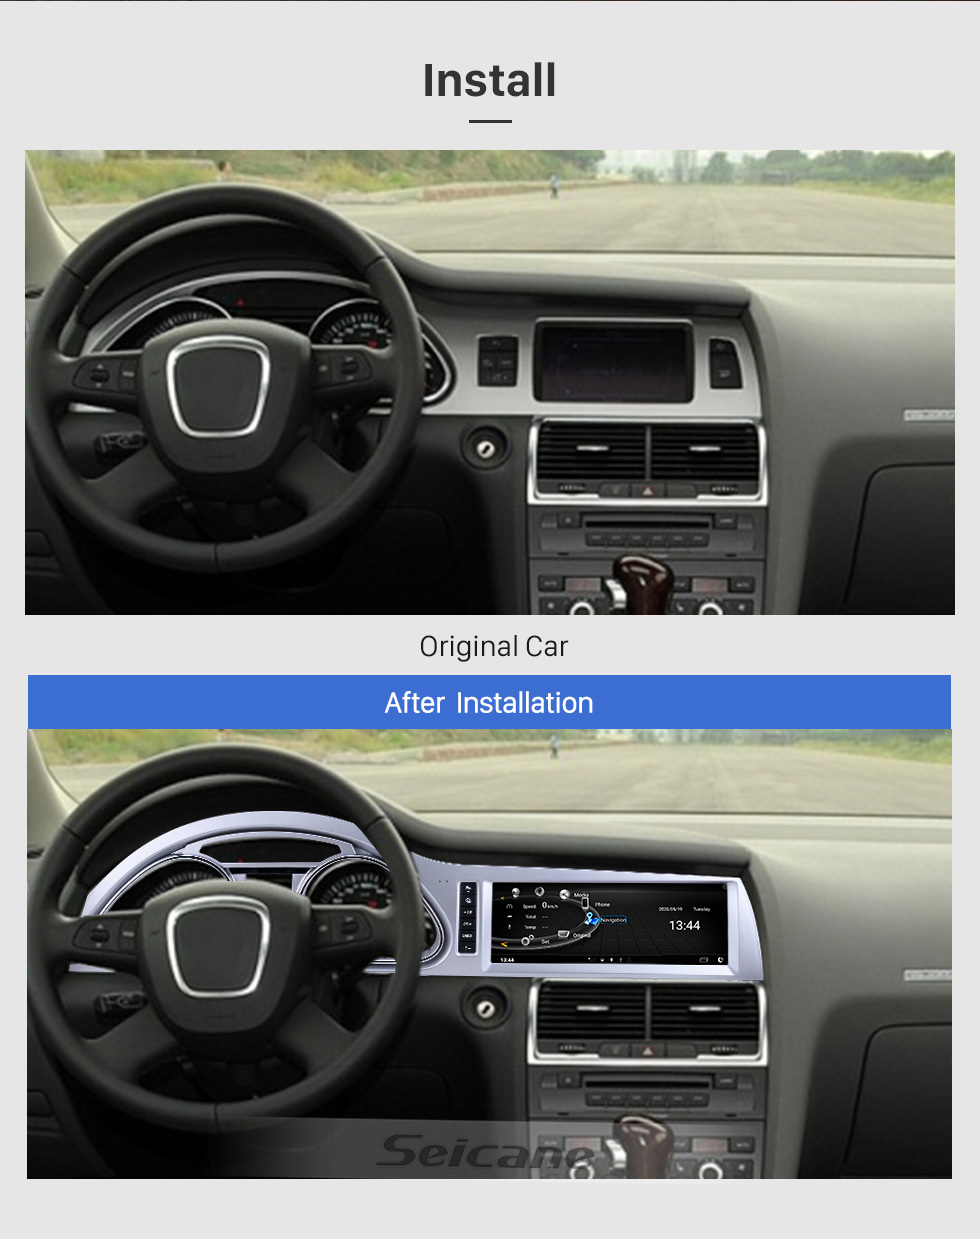 Seicane 10.25 inch for 2010 2011 2012 2013 2014 2015 Audi Q7 Radio Bluetooth Android 9.0 HD Touchscreen GPS Navigation support Carplay DAB+ DVR